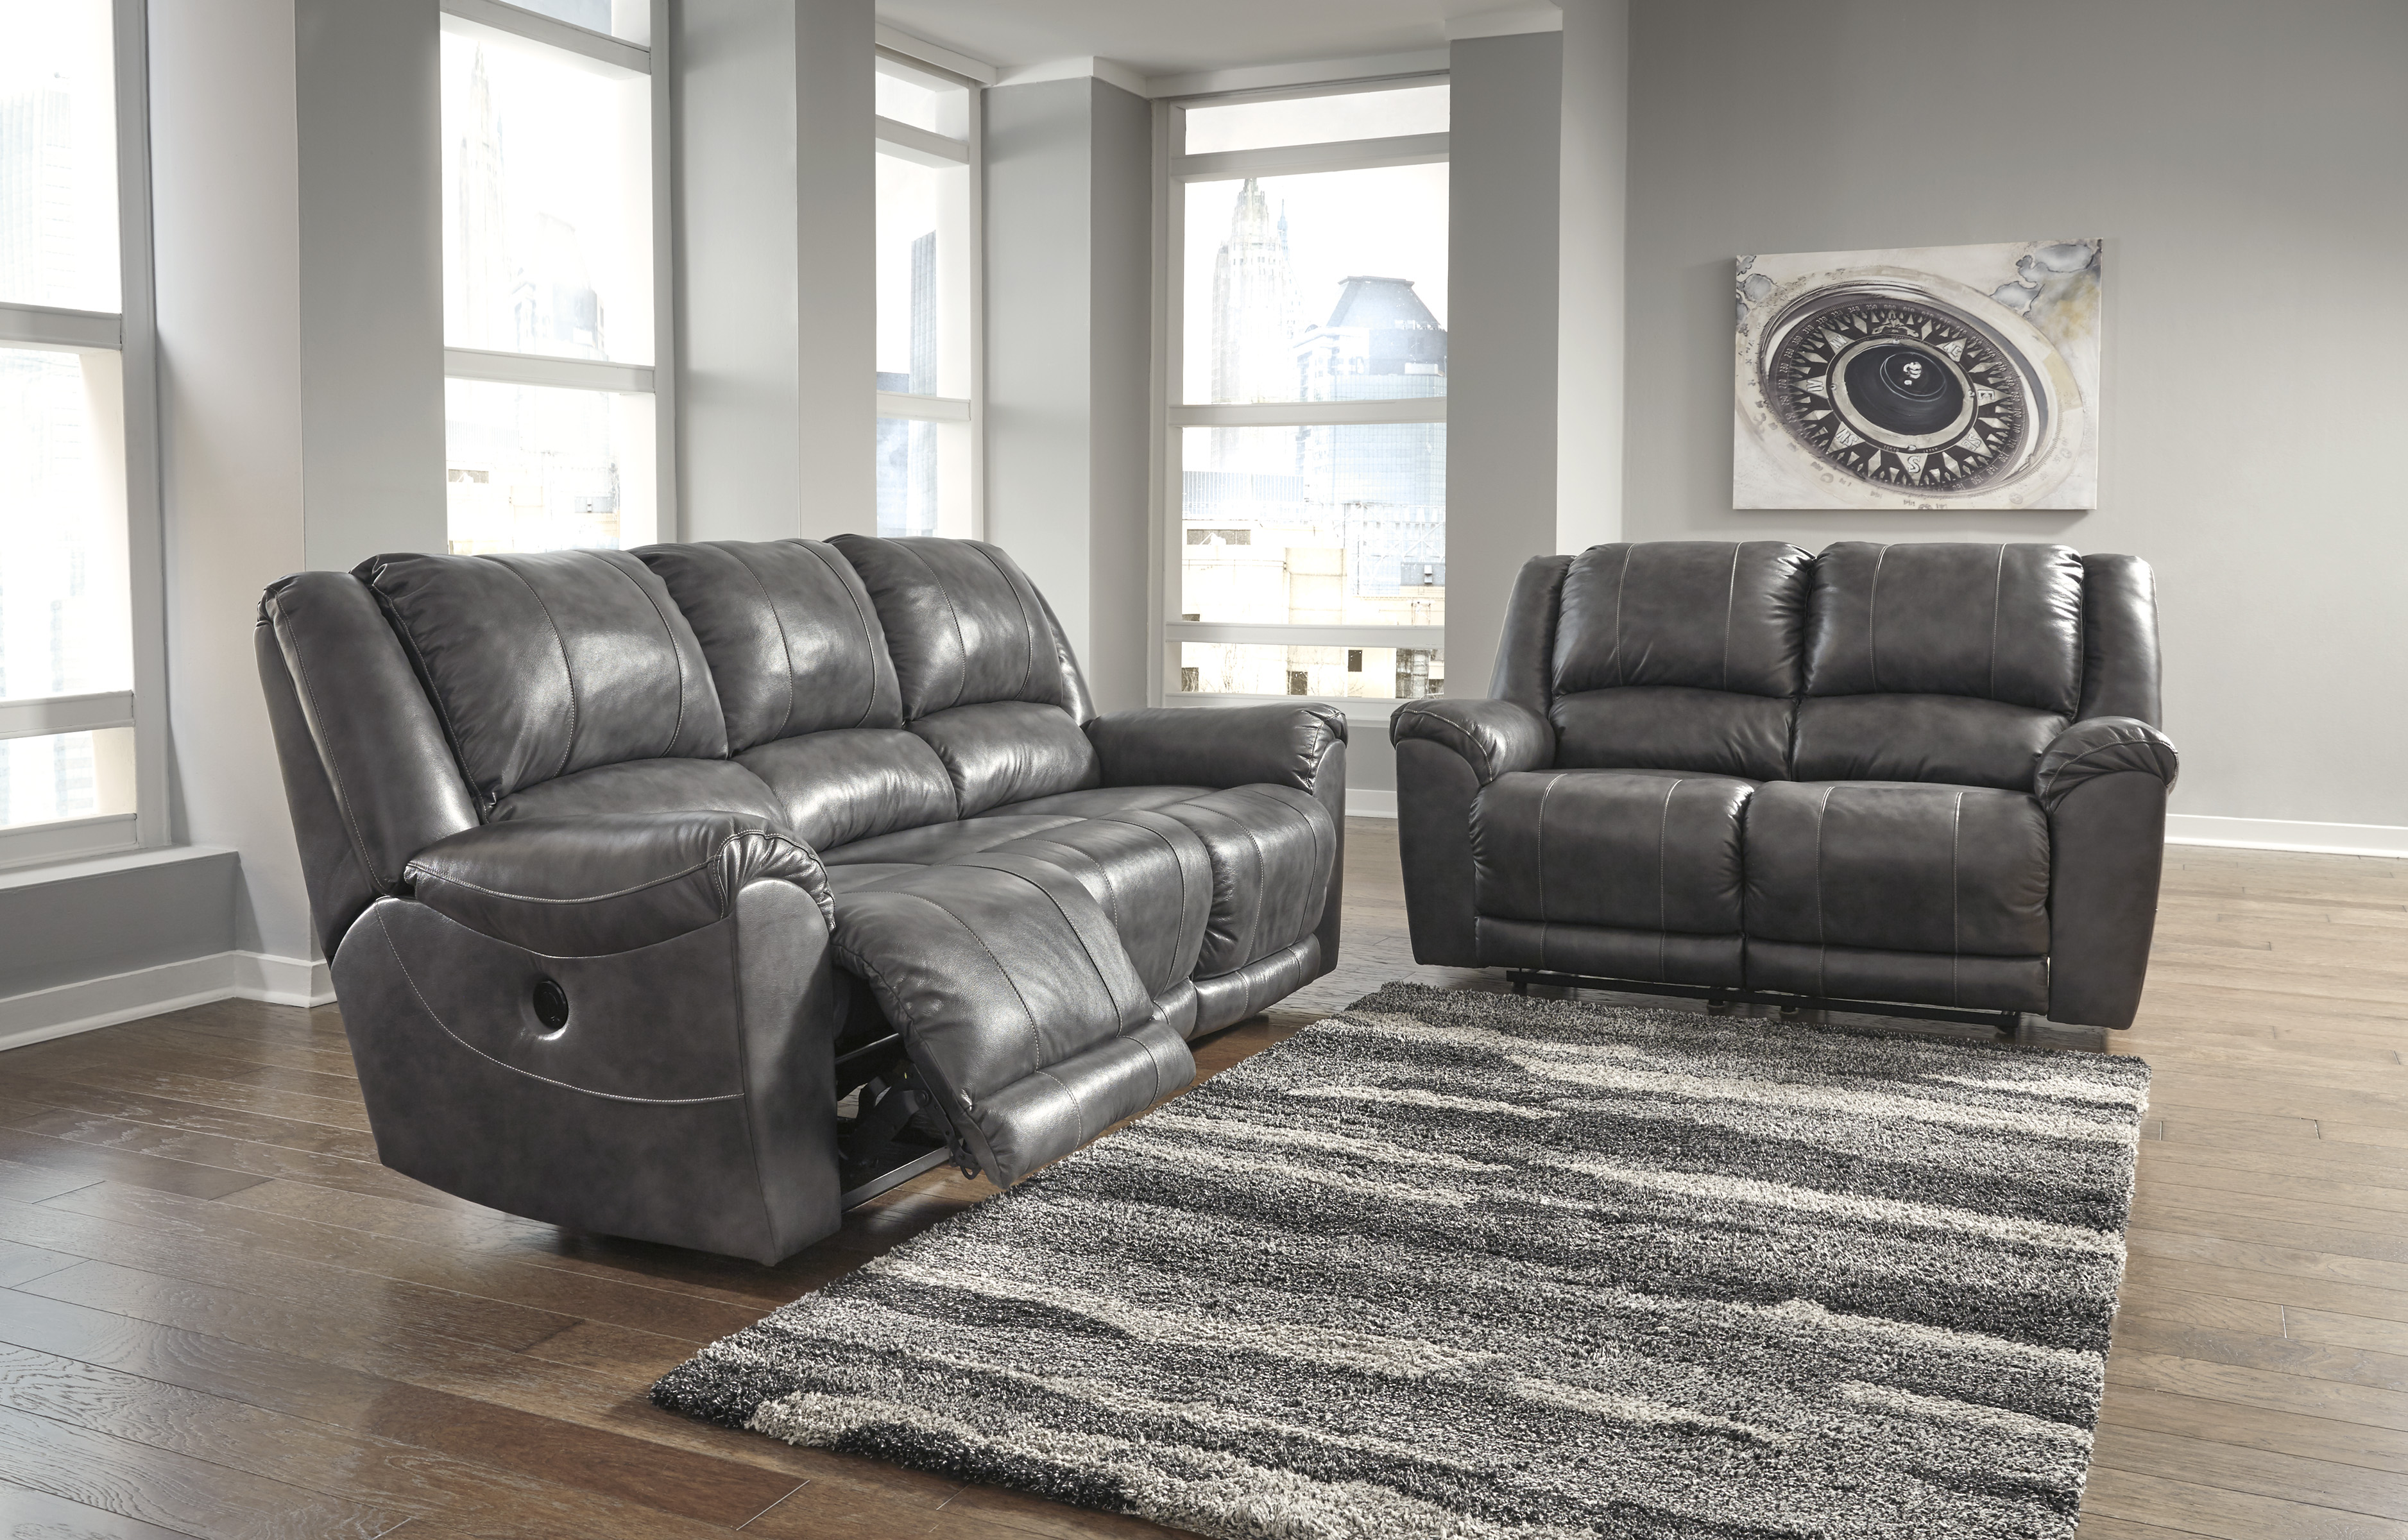 Sensational Persiphone Charcoal Power Reclining Sofa And Loveseat Gmtry Best Dining Table And Chair Ideas Images Gmtryco